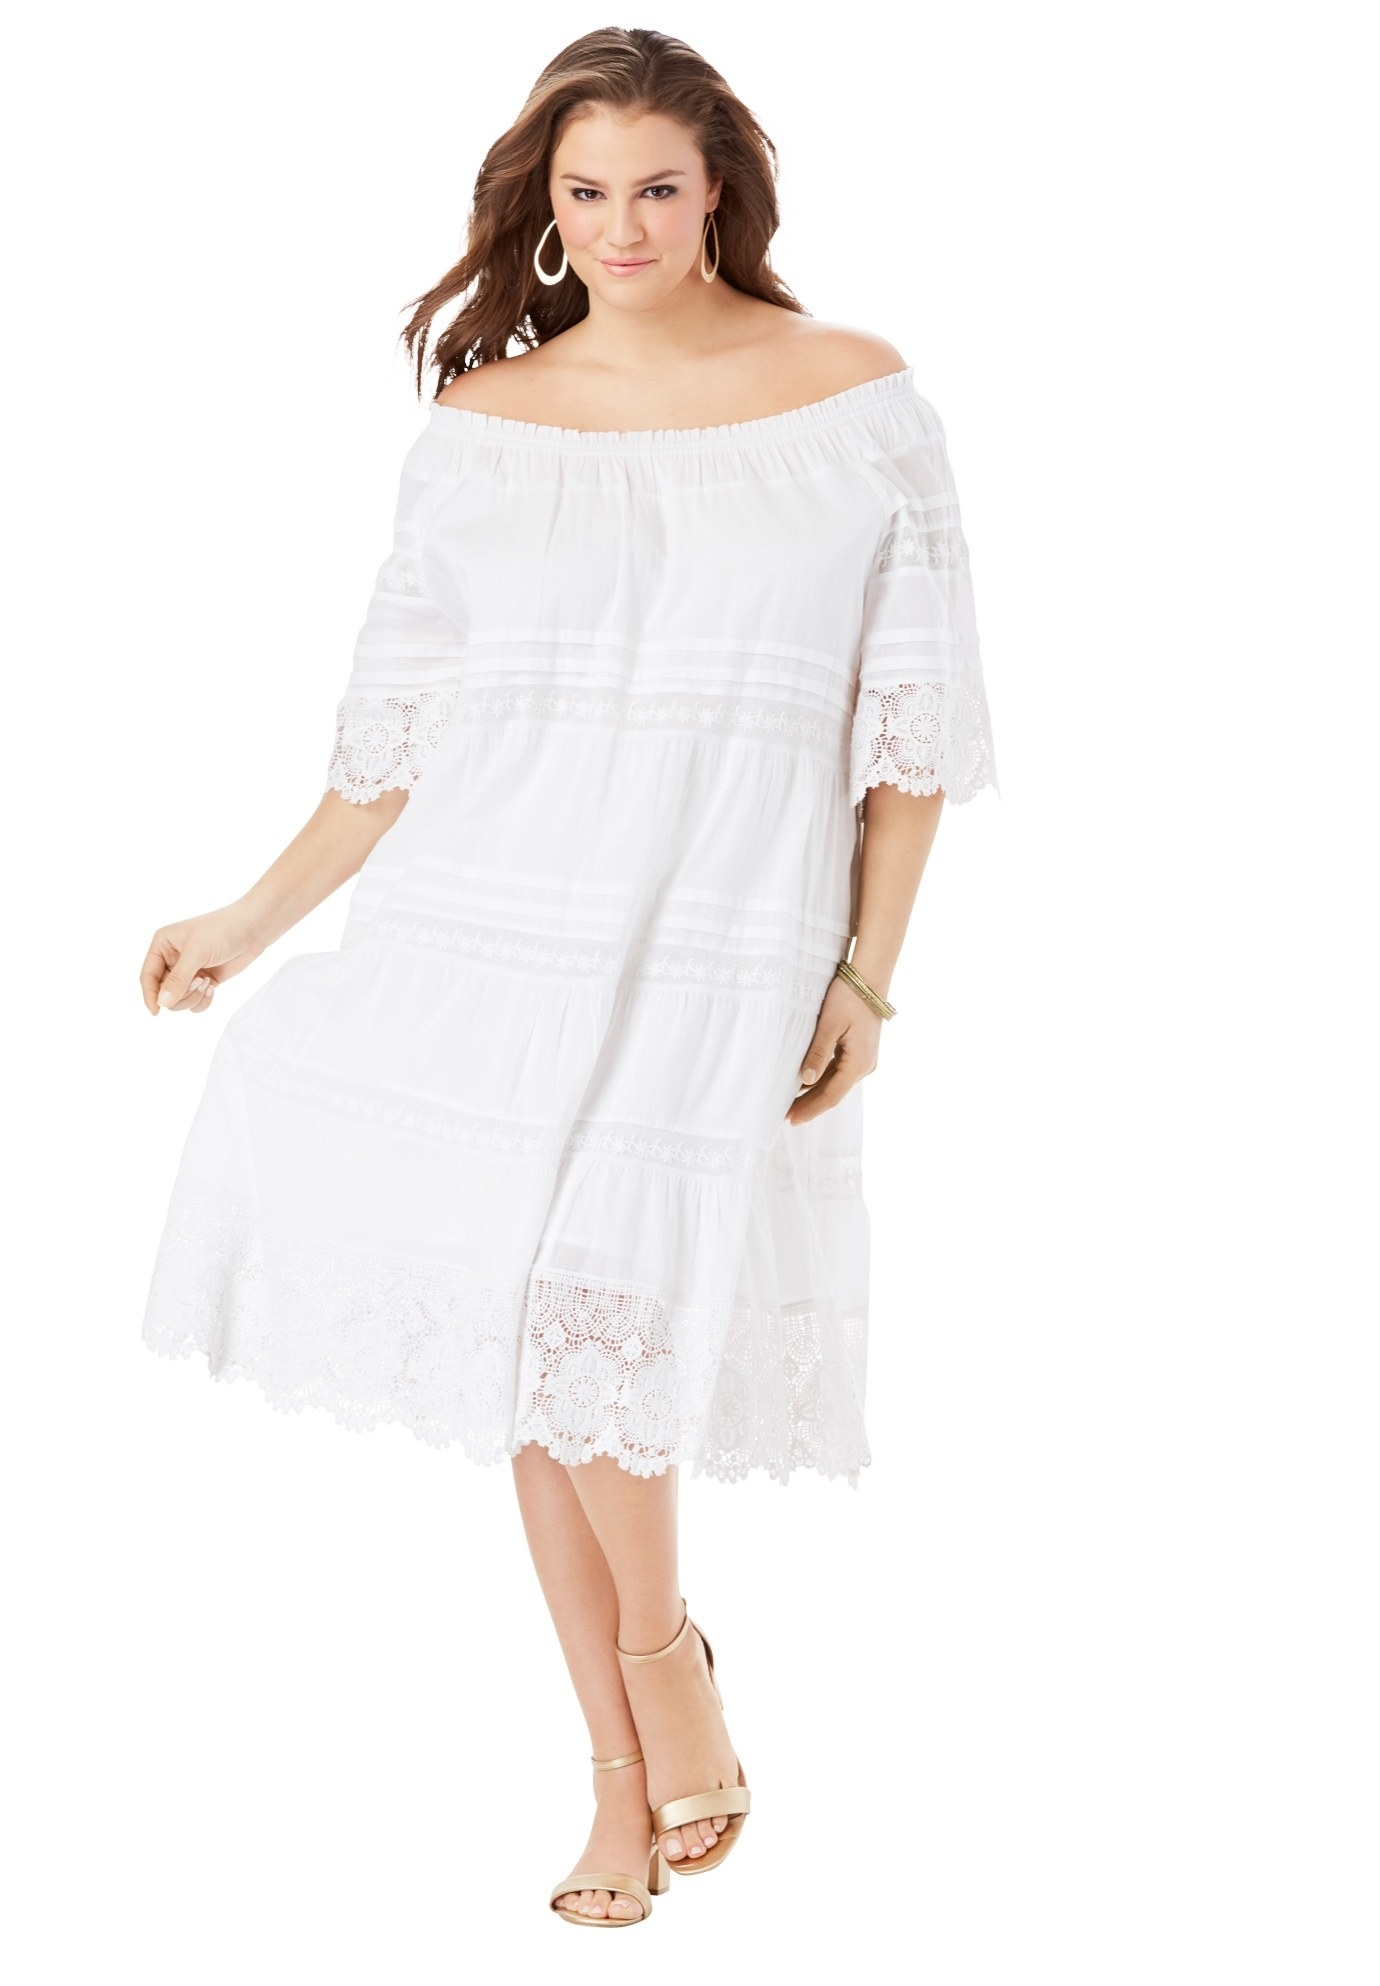 Model in an off the shoulder white lace dress